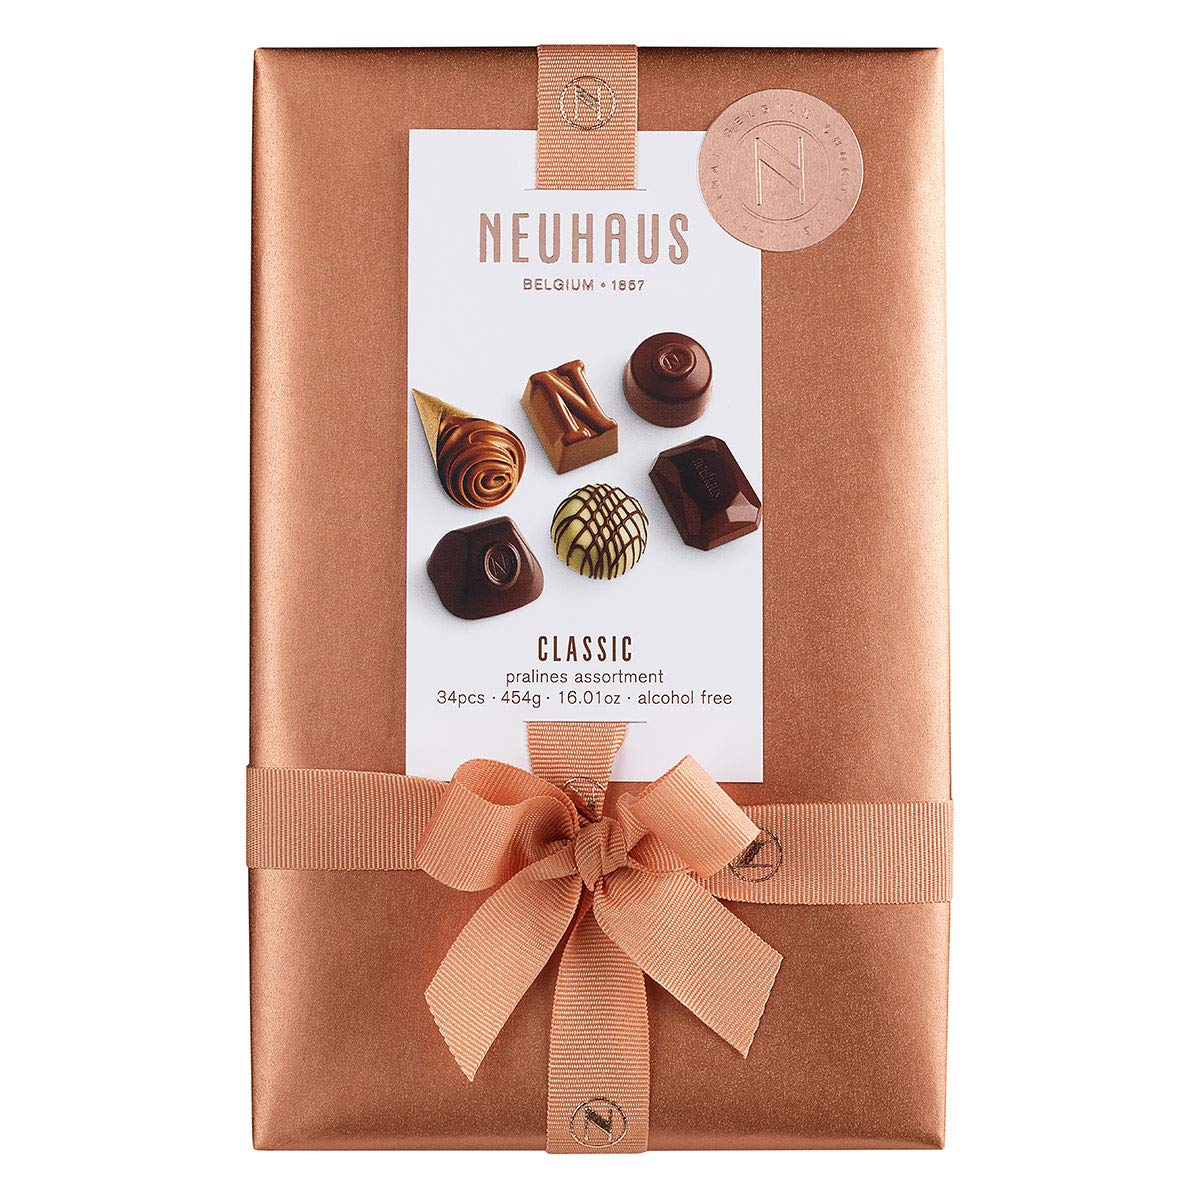 Neuhaus Belgian Chocolate Ballotin (34 pieces) - Gourmet Chocolate Gift Box - 1 lb by Neuhaus